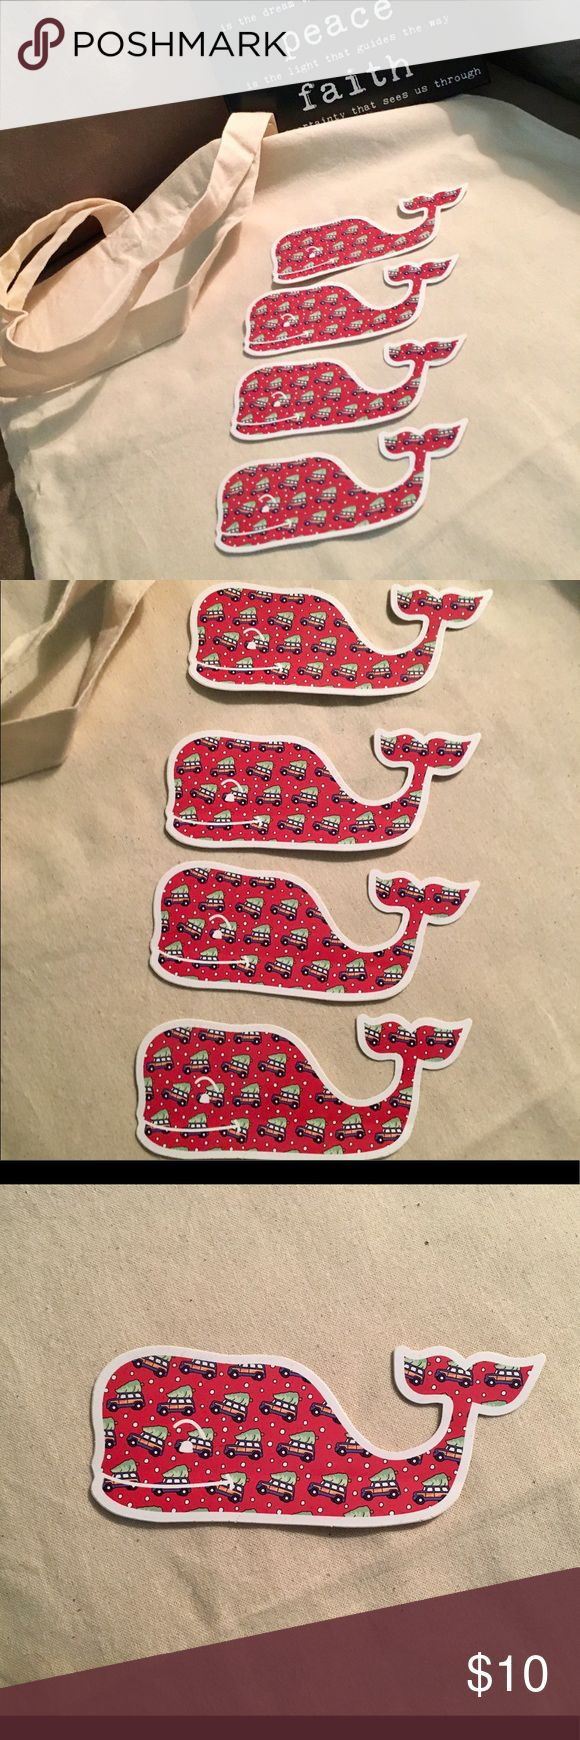 4 Vineyard Vines Whale Stickers 4 new Vineyard Vines Stickers. Perfect for laptop love or anywhere you'd like to rep your fav VV brand! 🐳 Vineyard Vines Accessories